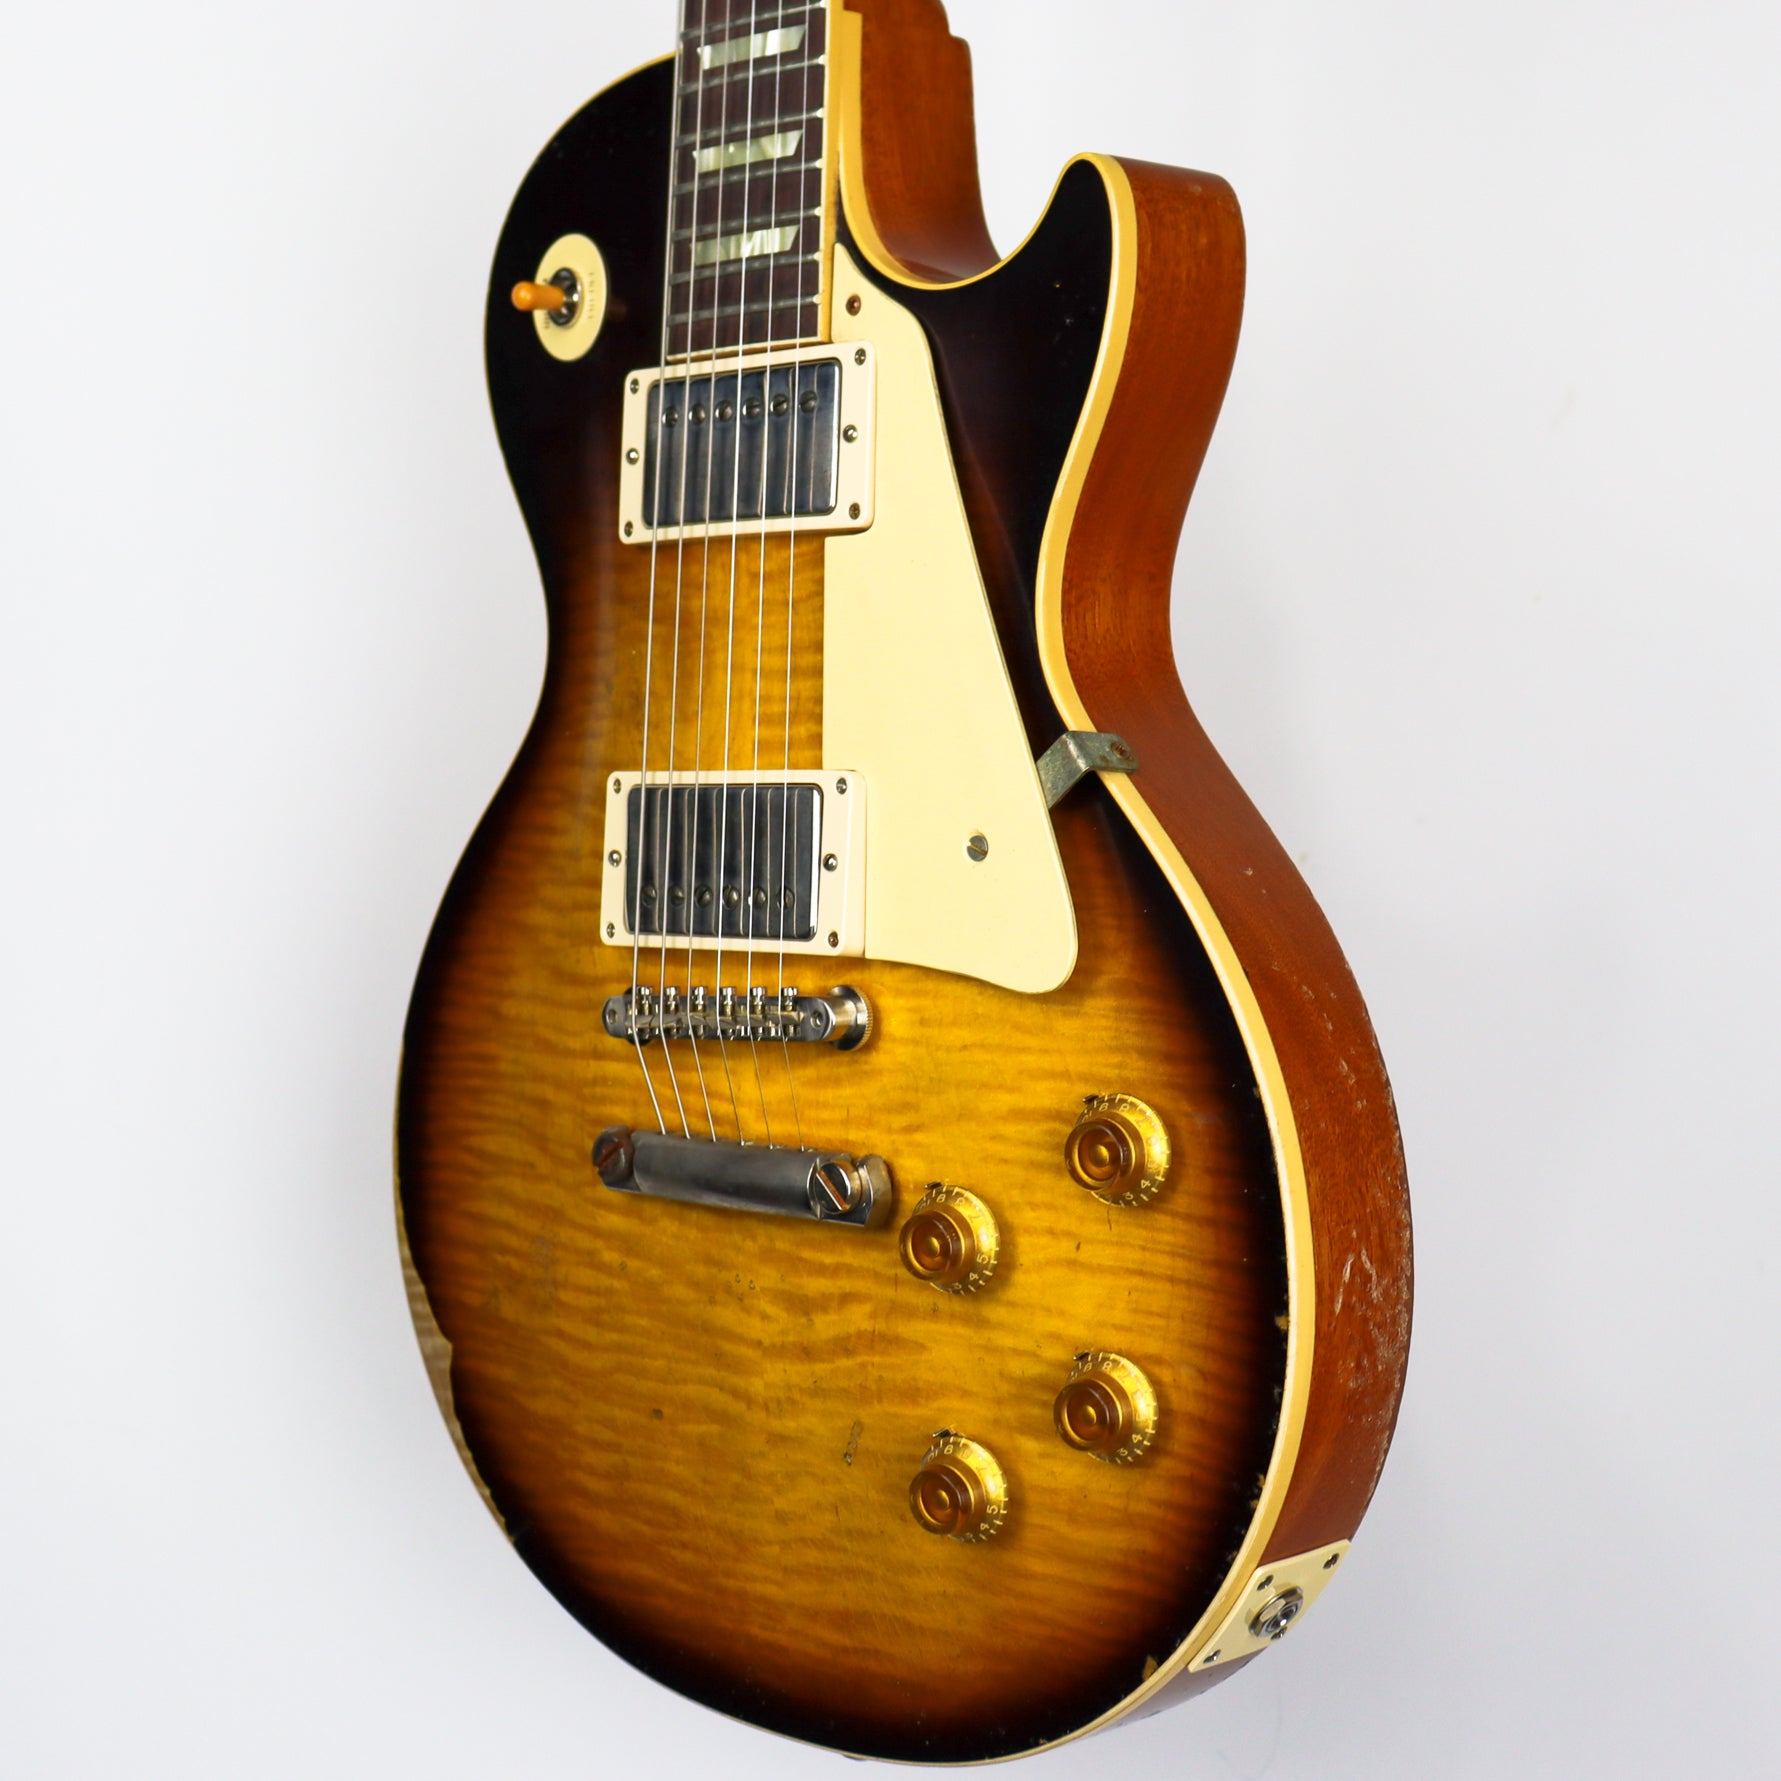 1959 Les Paul Standard Reissue Ultra Heavy Aged Kindred Burst